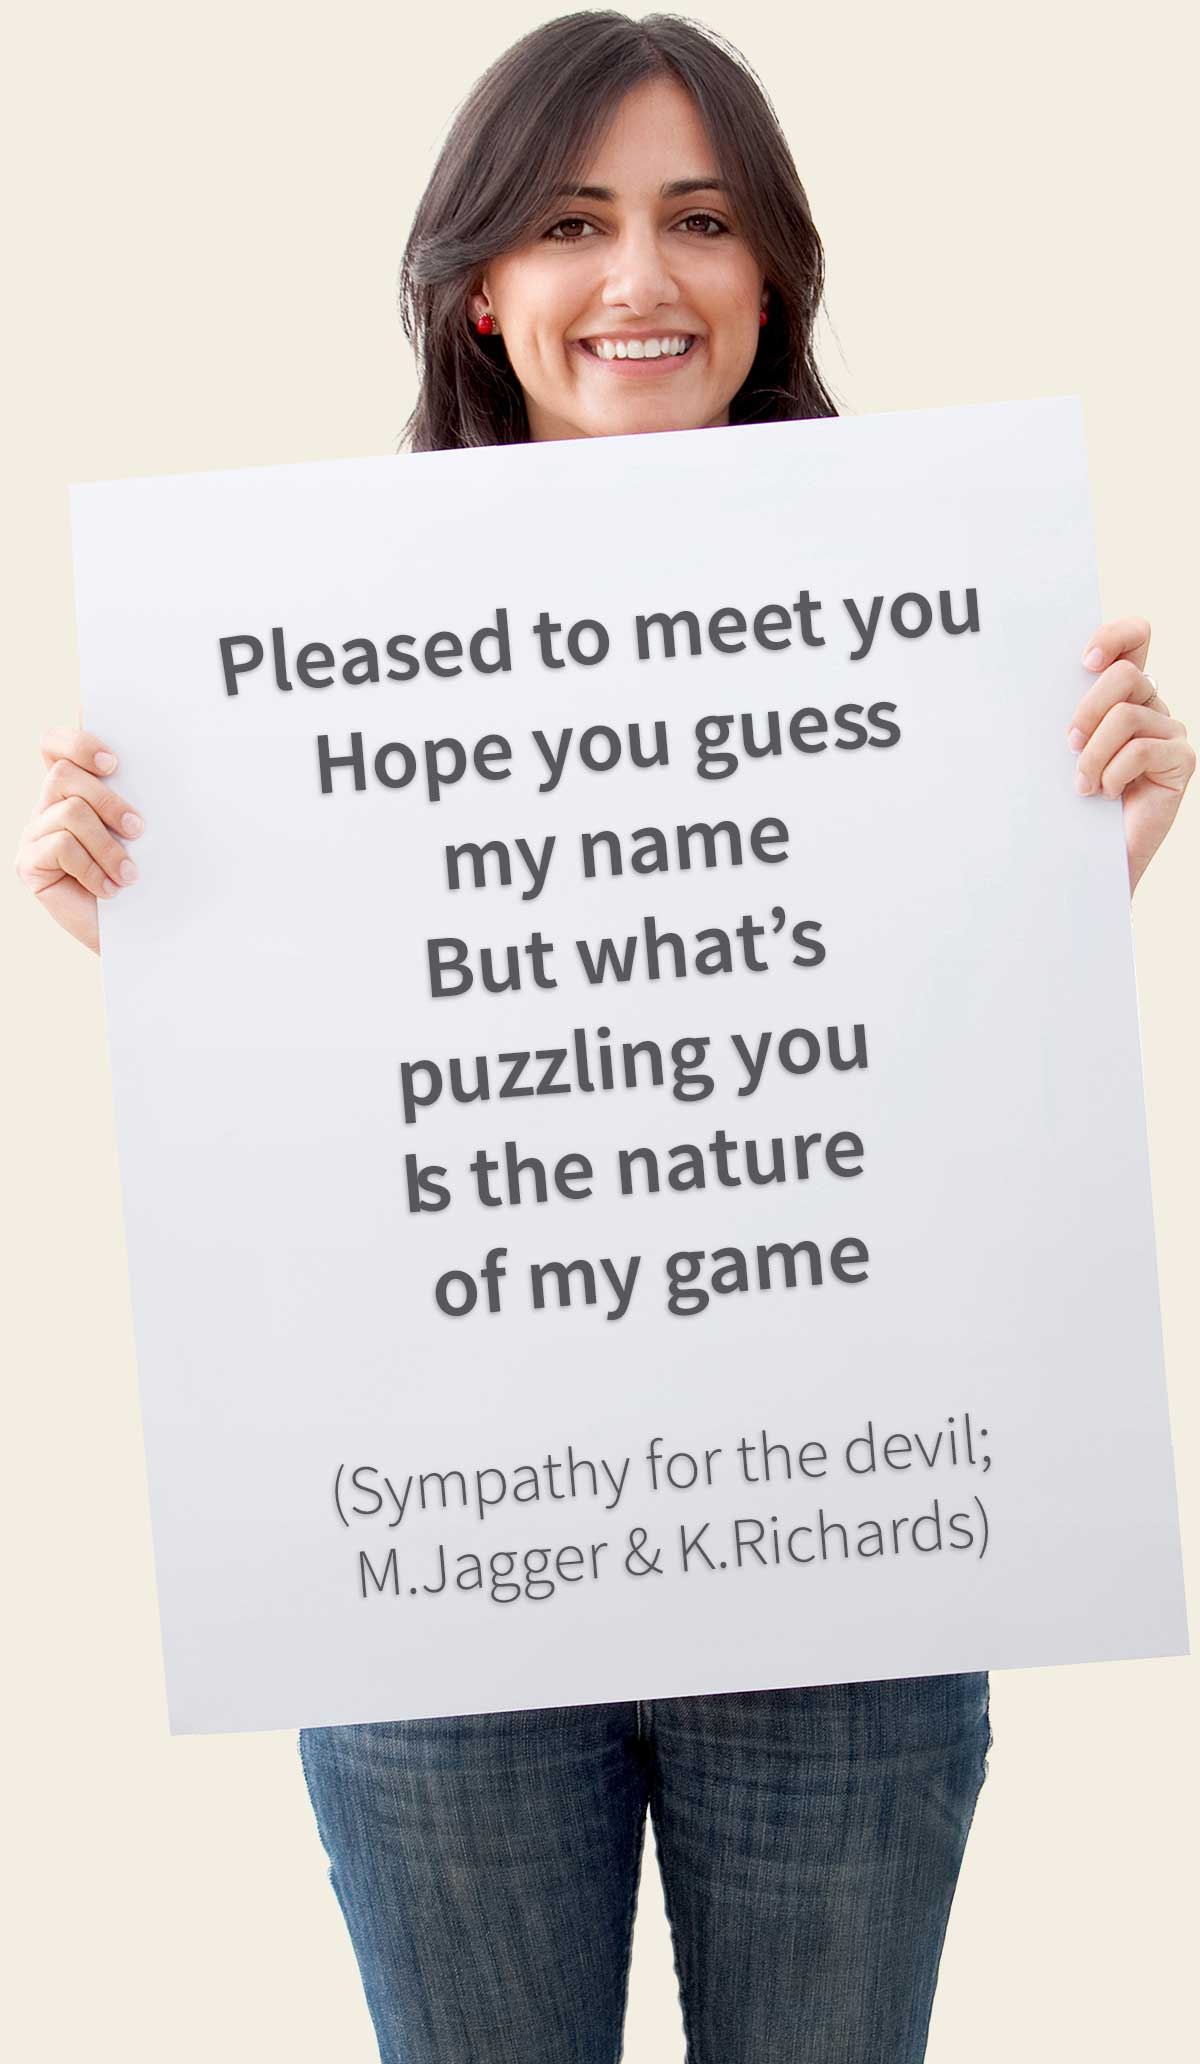 Pleased to meet you / Hope you guess my name / But what's puzzling you Is the nature of my game (Sympathy for the devil; M.Jagger & K.Richards)